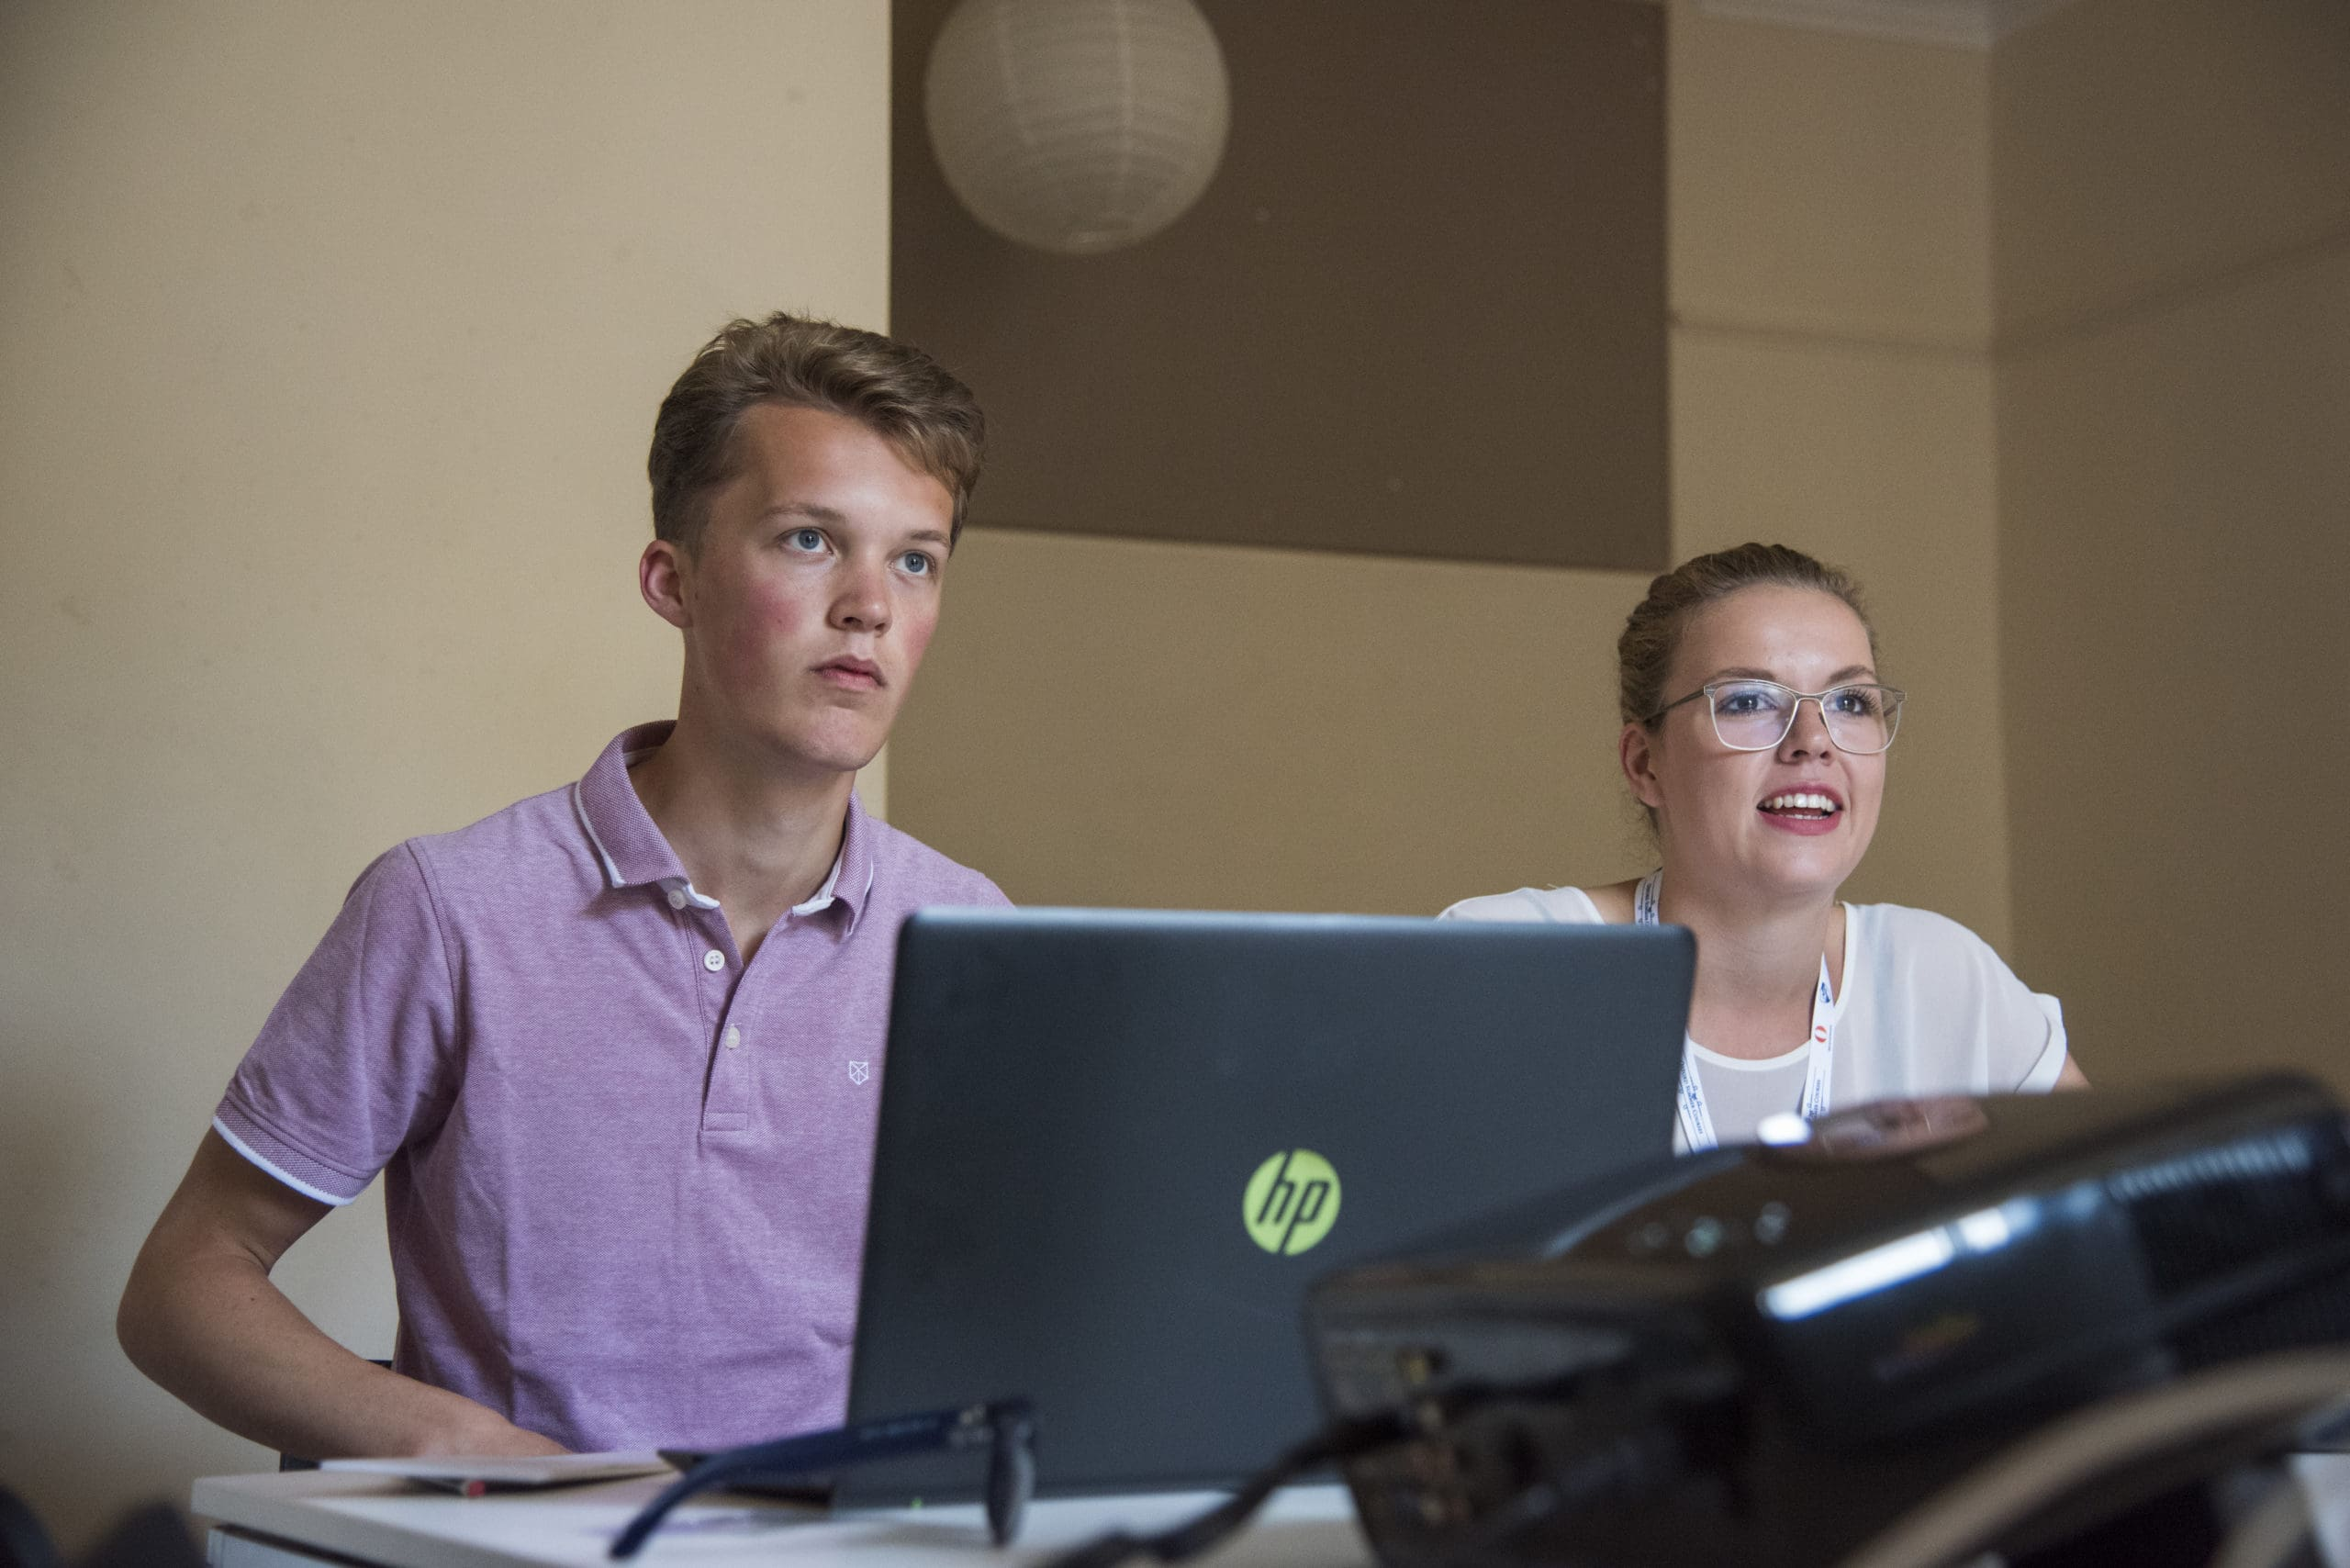 male-and-female-student-sat-behind-laptop-during-seminar